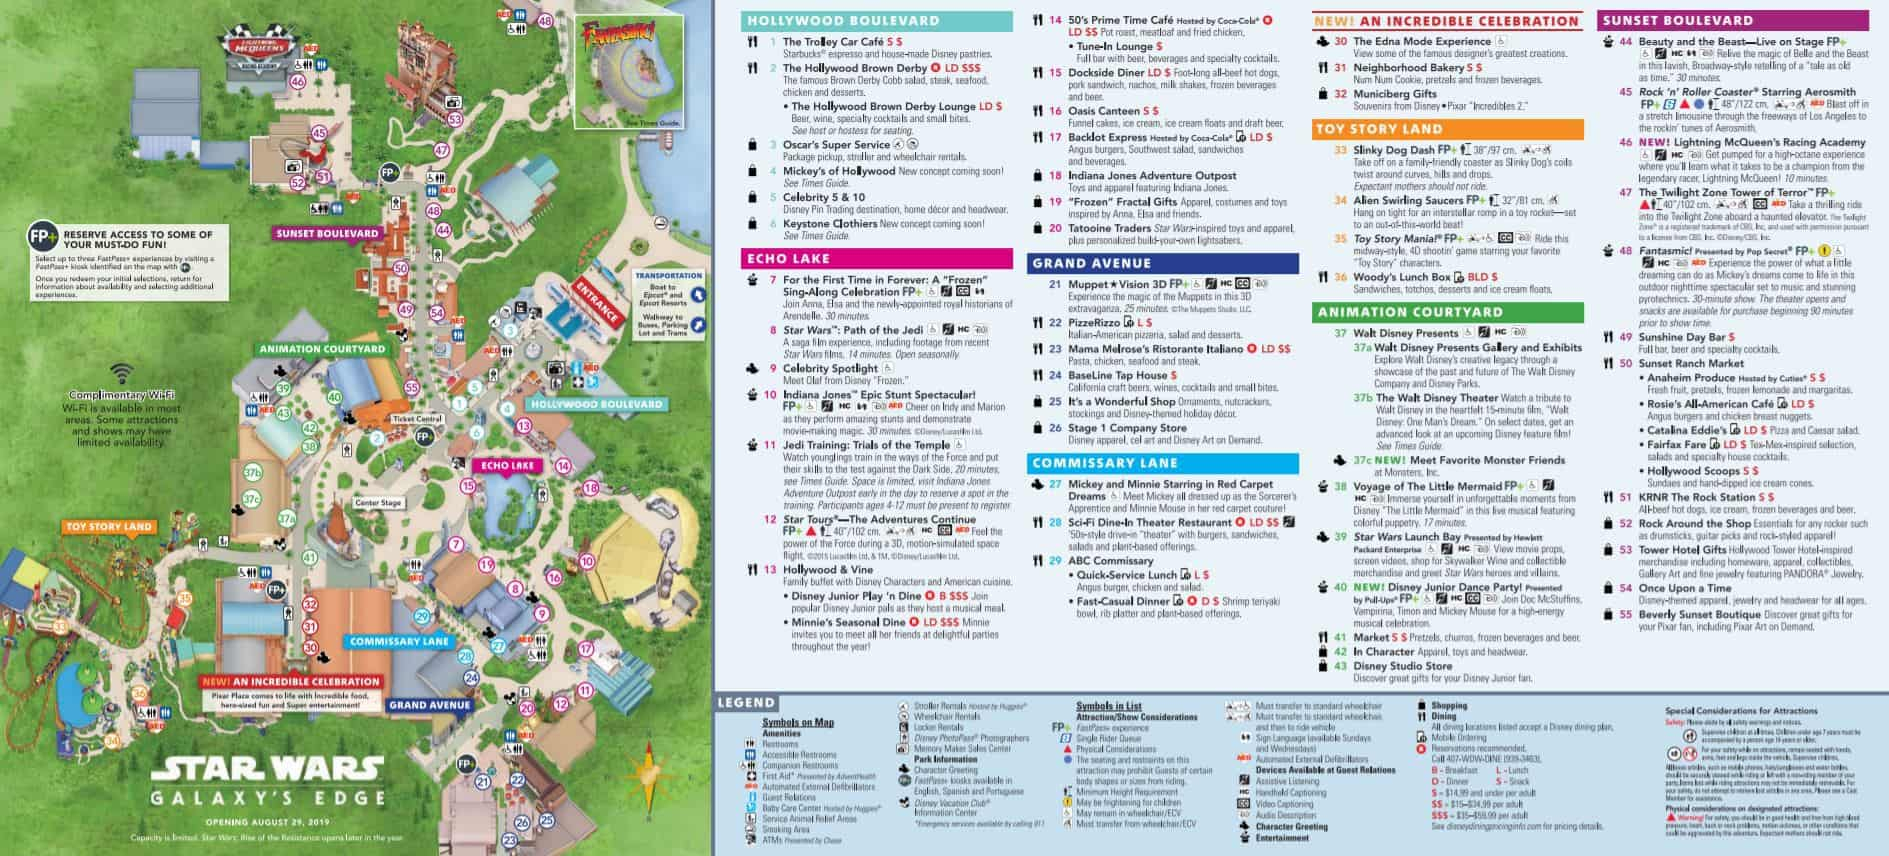 Disney World Maps - Download For The Parks, Resorts, Parties